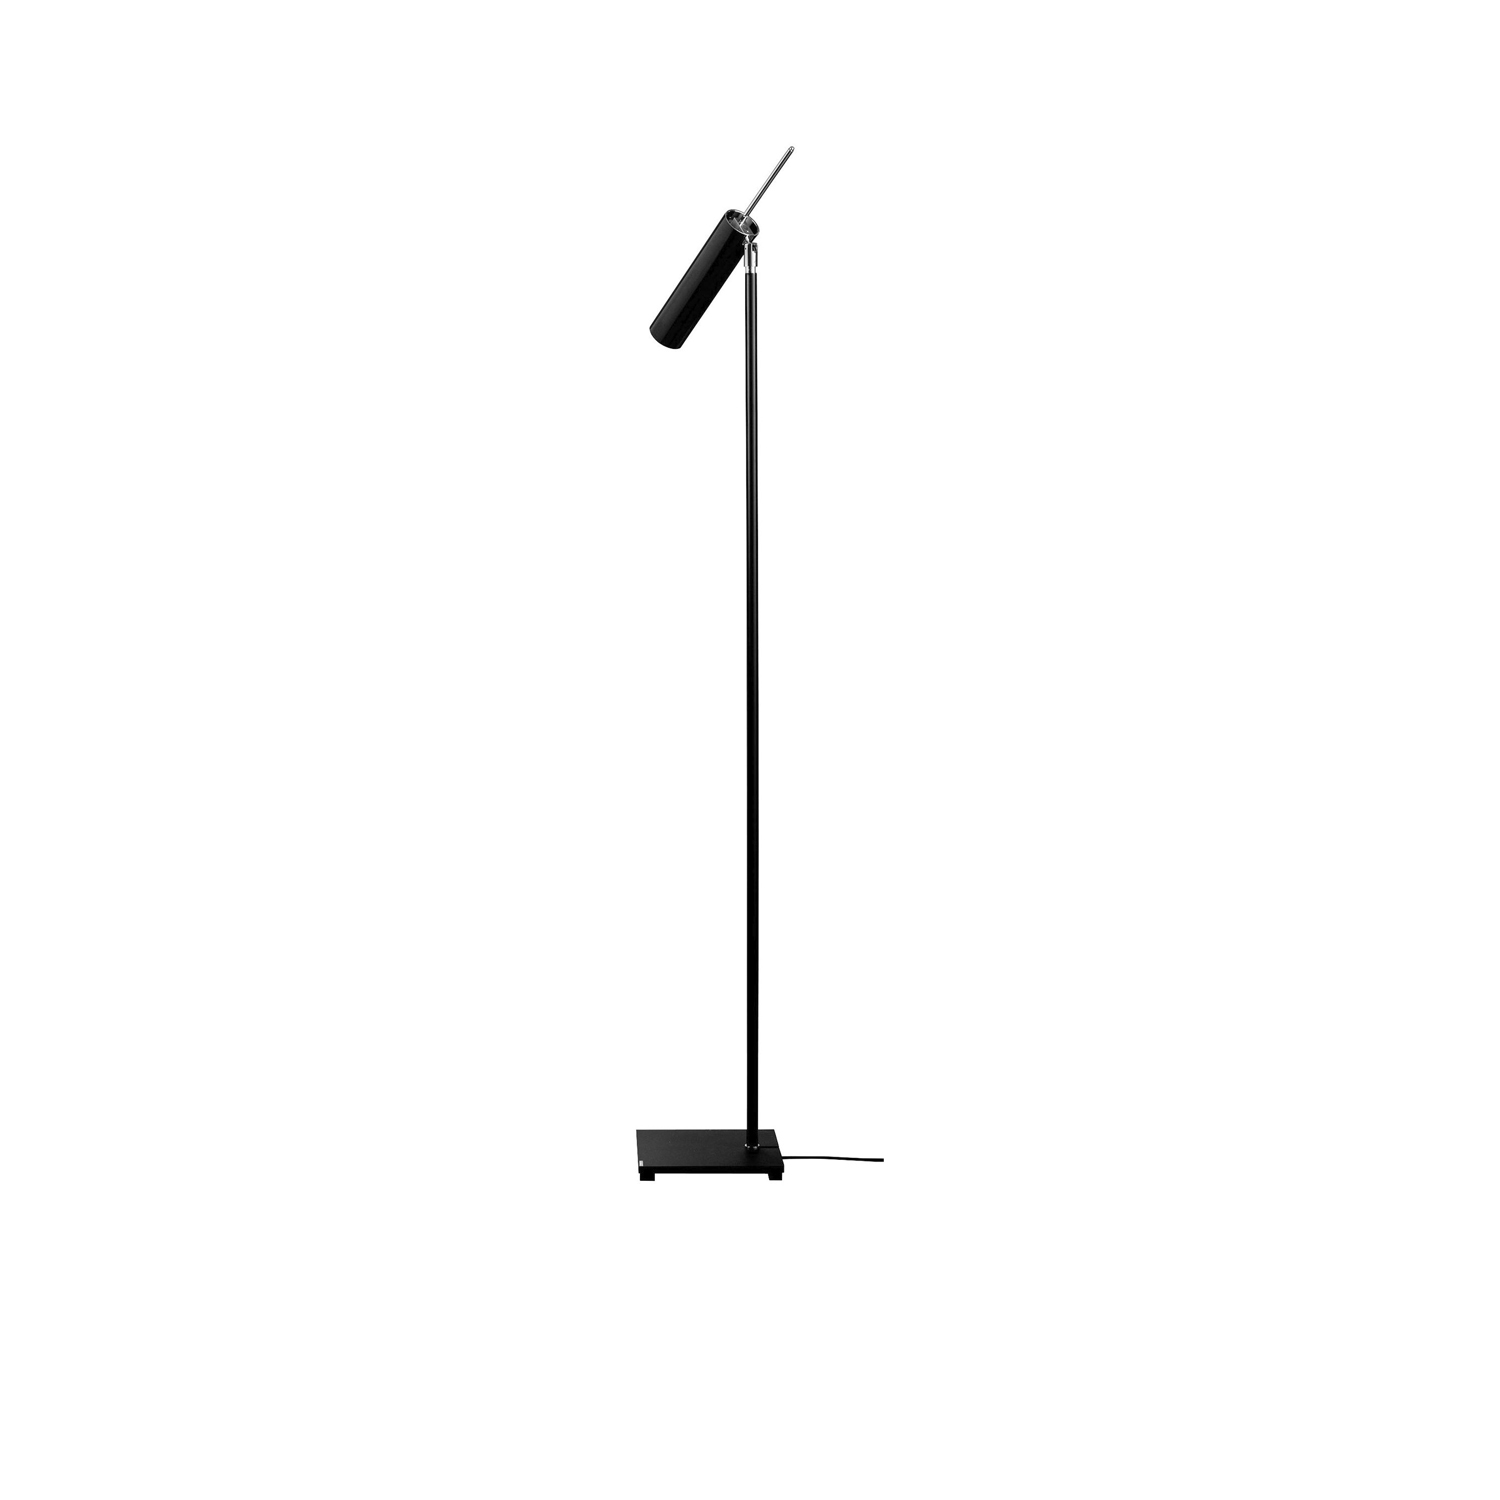 Lucenera 506 Floor Lamp - Lucenera was developed from a simple concept: taking the limelight off the lamp and giving centre stage to the light, depending on the subject illuminated. To achieve this, Enzo Catellani used a black carbon tube and flexible support. The shape is the simplest one possible; the object is the utmost in versatility. | Matter of Stuff